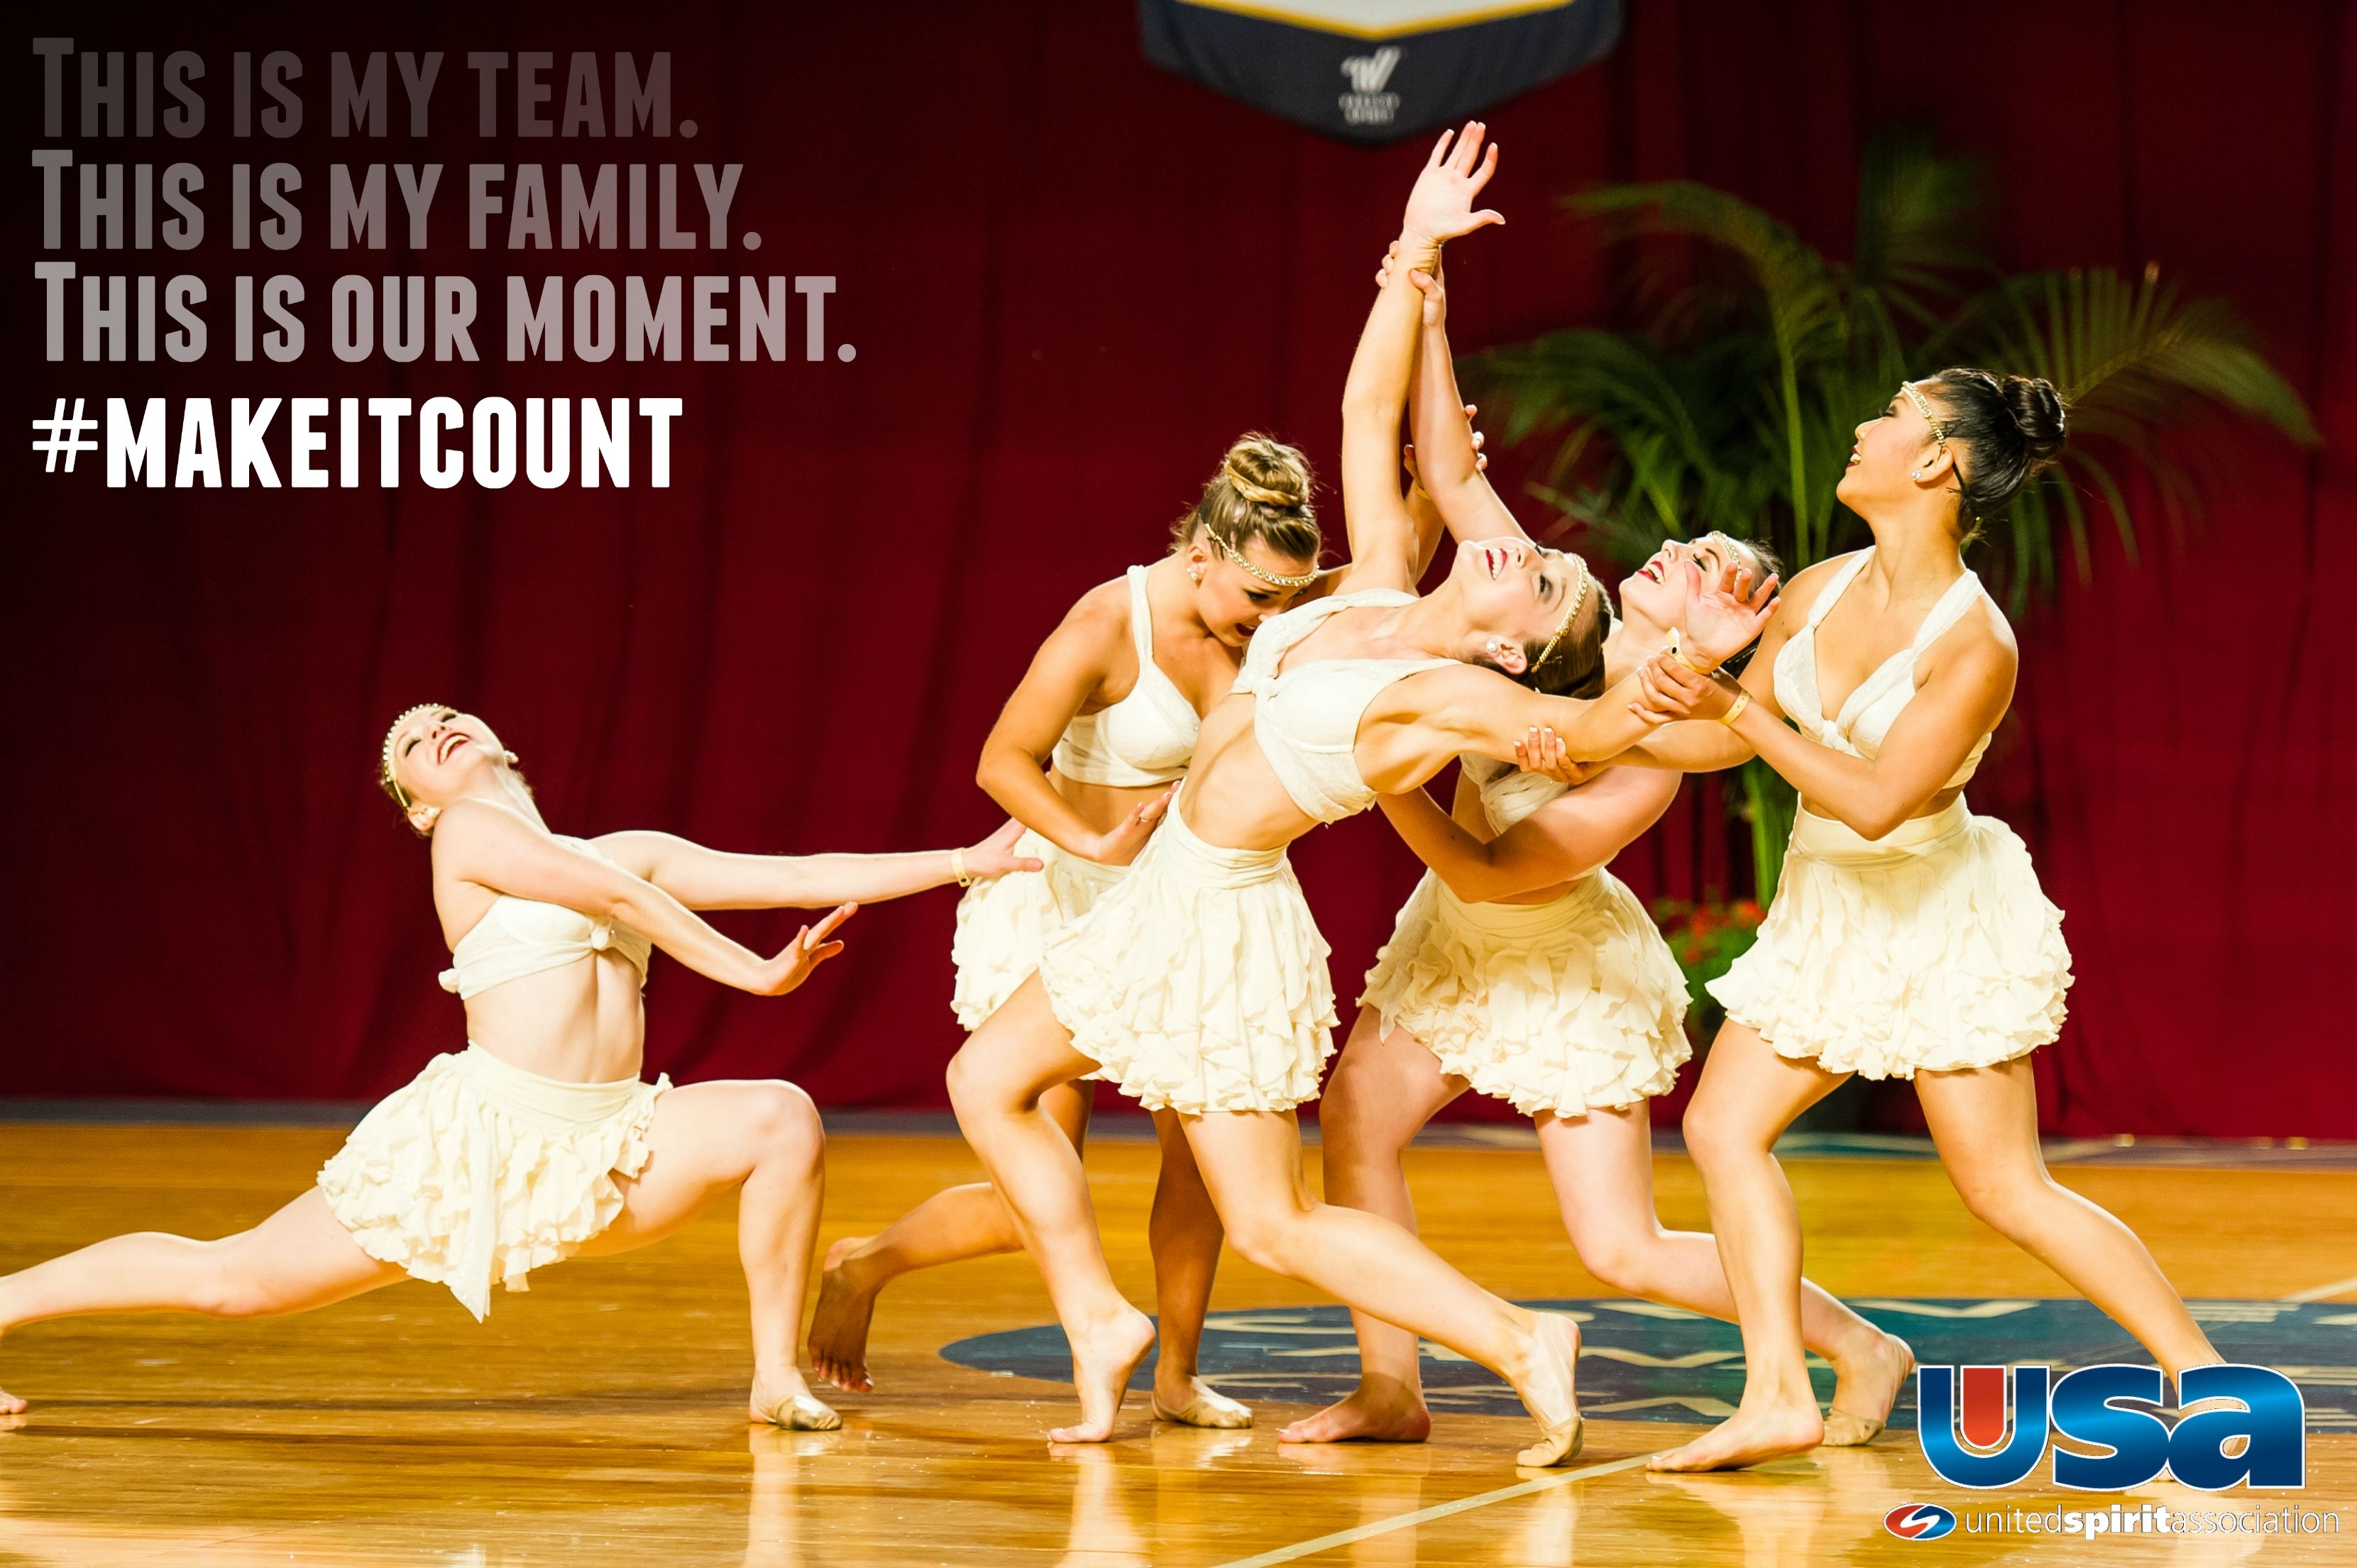 #MakeItCount For more information about USA competitions, Nationals, and Championships, please visit USA.varsity.com!